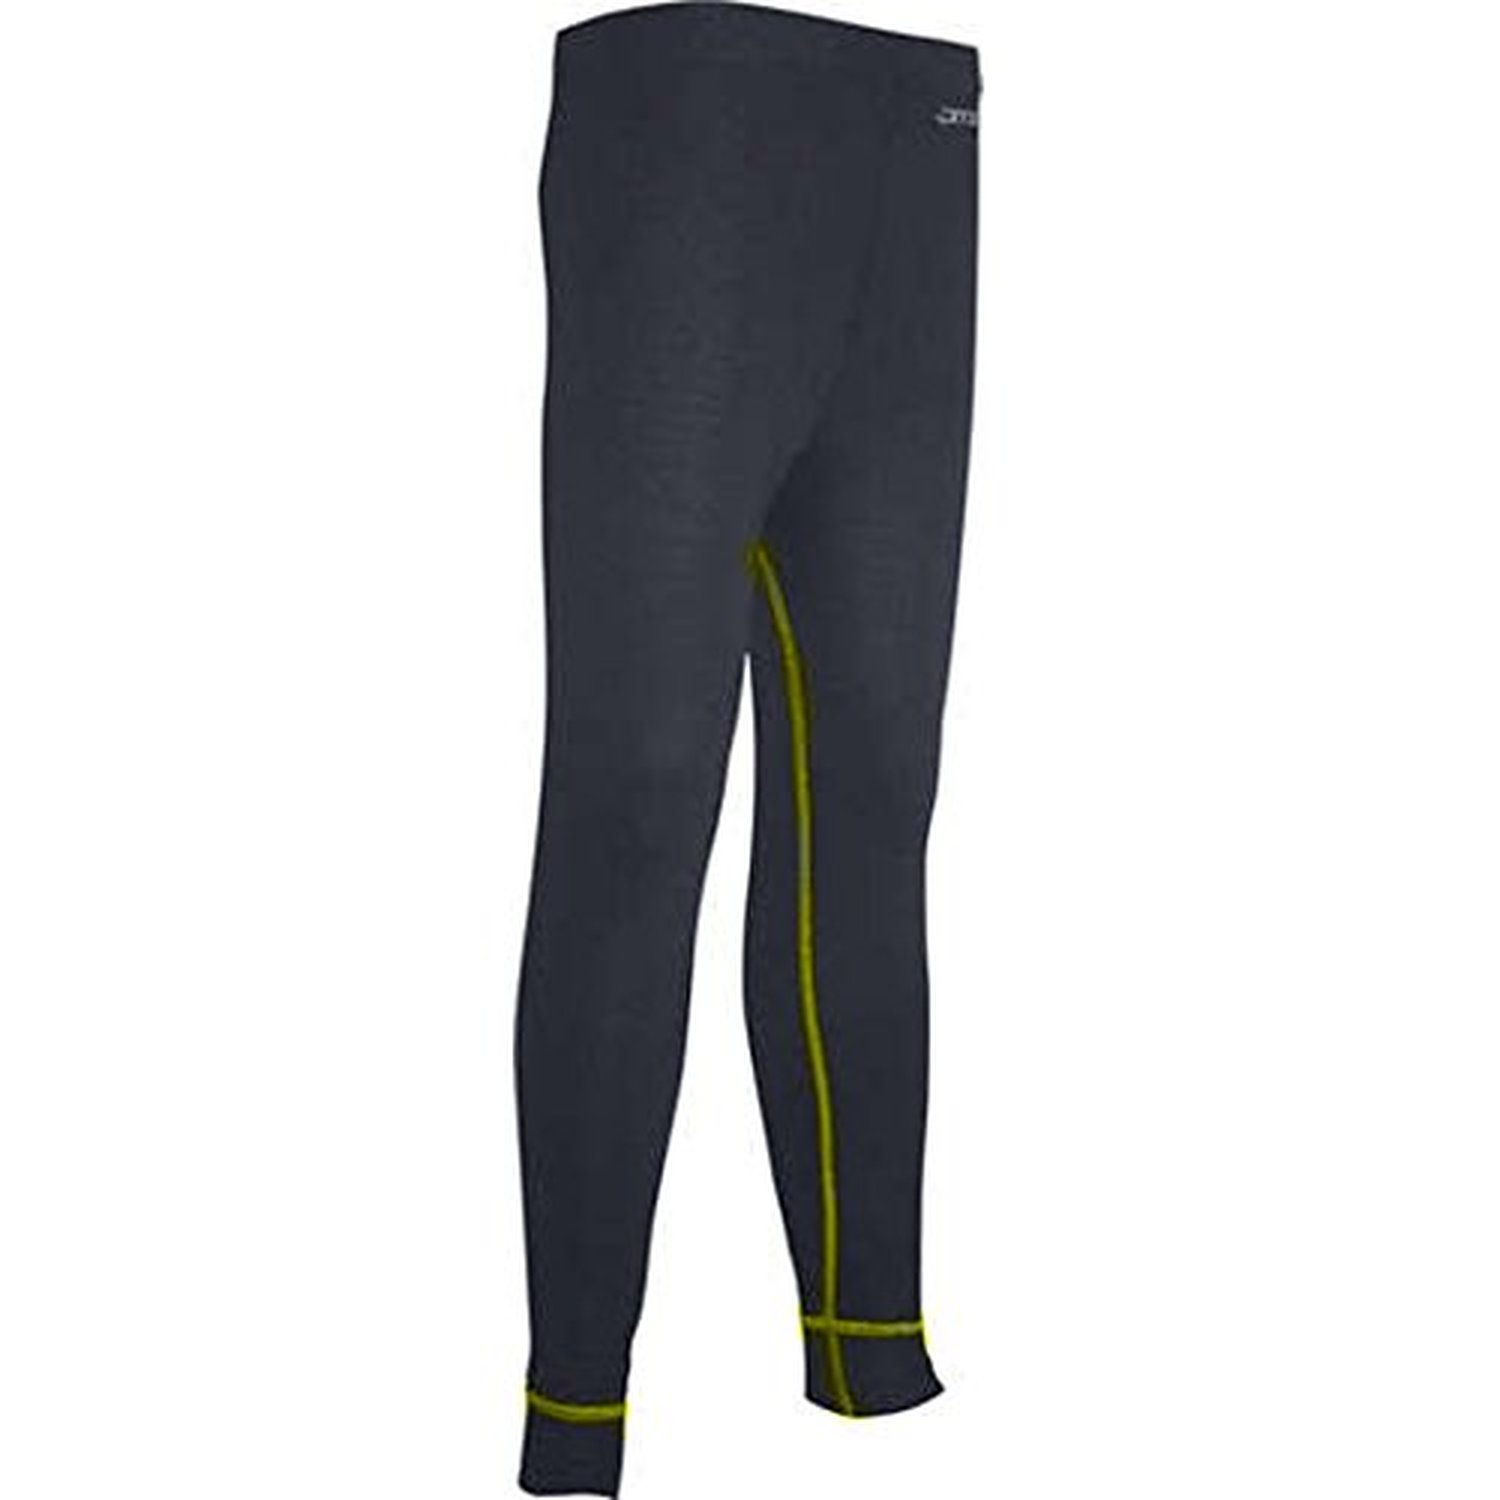 Polarmax Youth Max Ride Pant 2015 by Polarmax